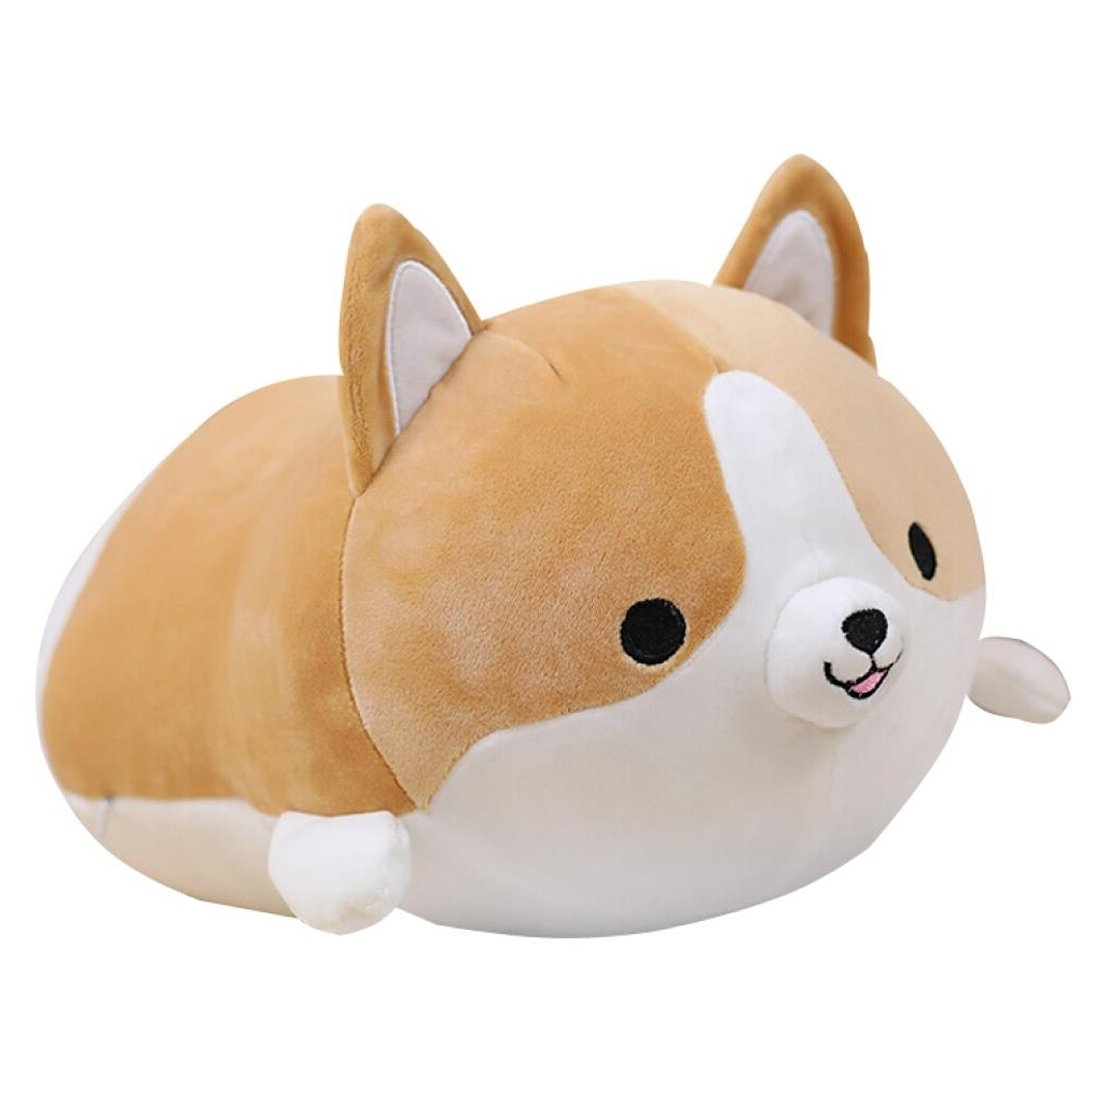 Levenkeness Corgi Dog Plush Pillow, Soft Cute Shiba Inu Akita Stuffed Animals Toy Gifts (brown, 17.7 in)